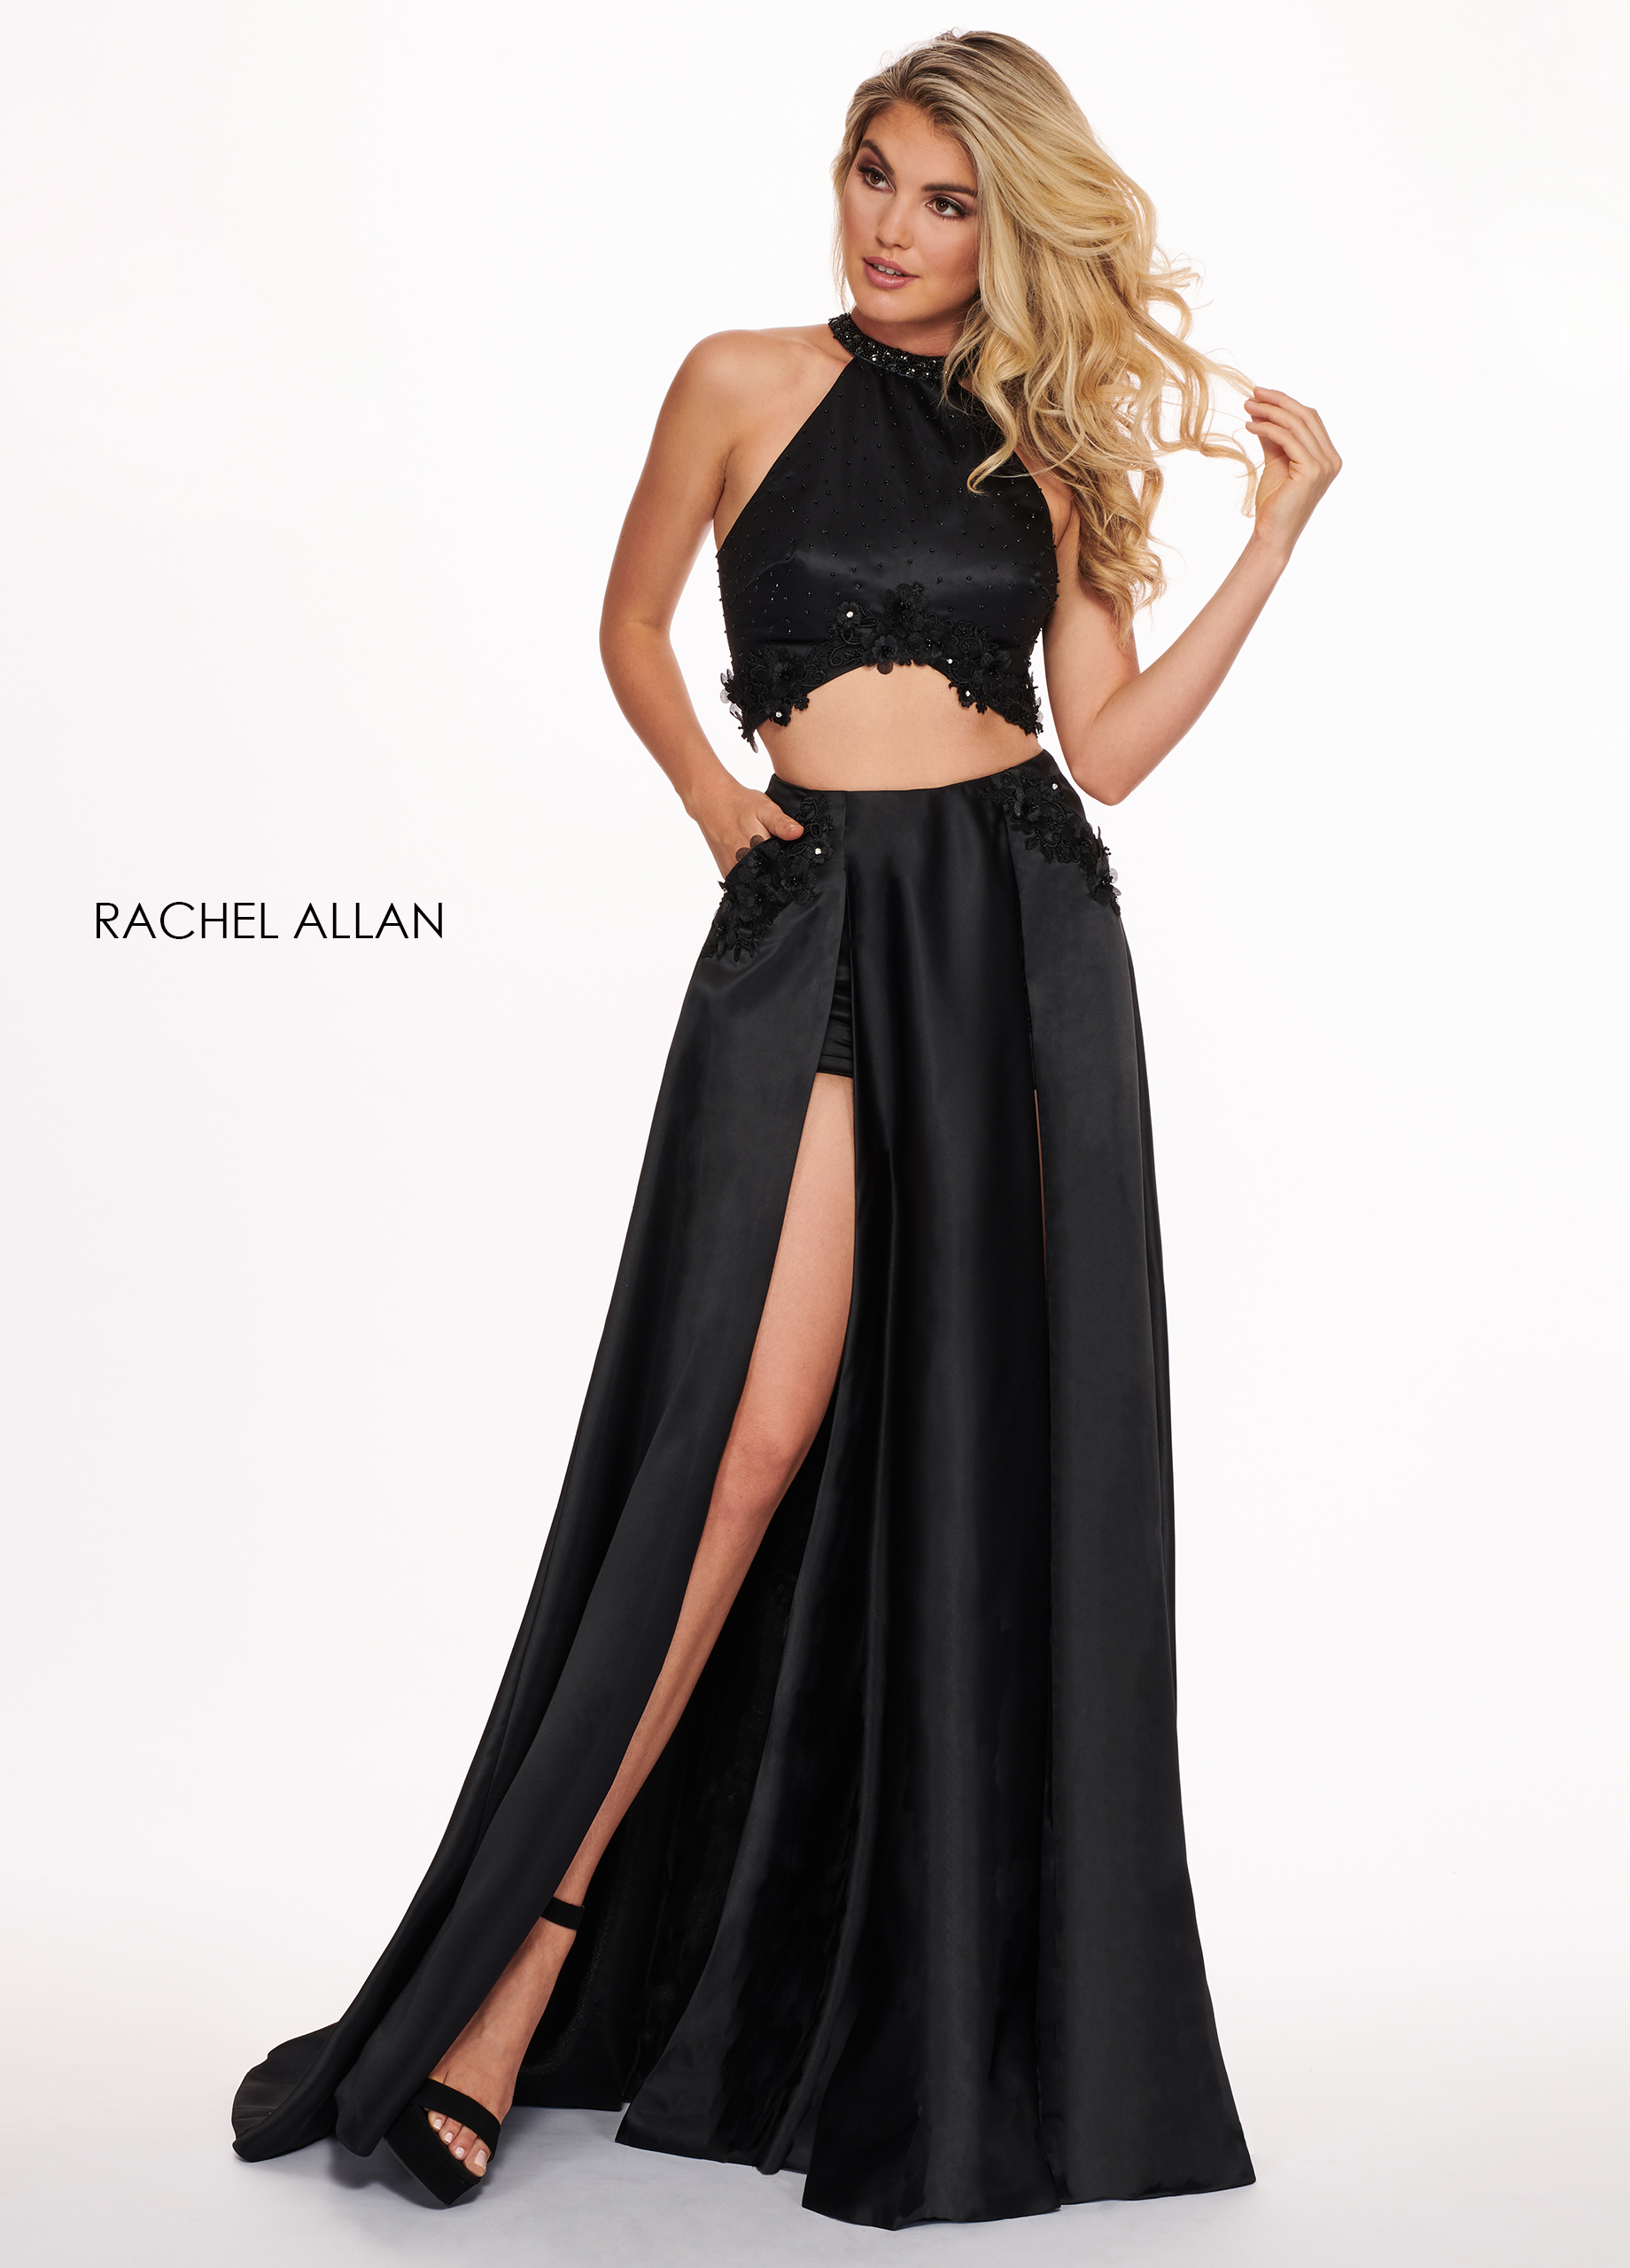 High Neckline Shorts With Overlay Prom Dresses in Black Color